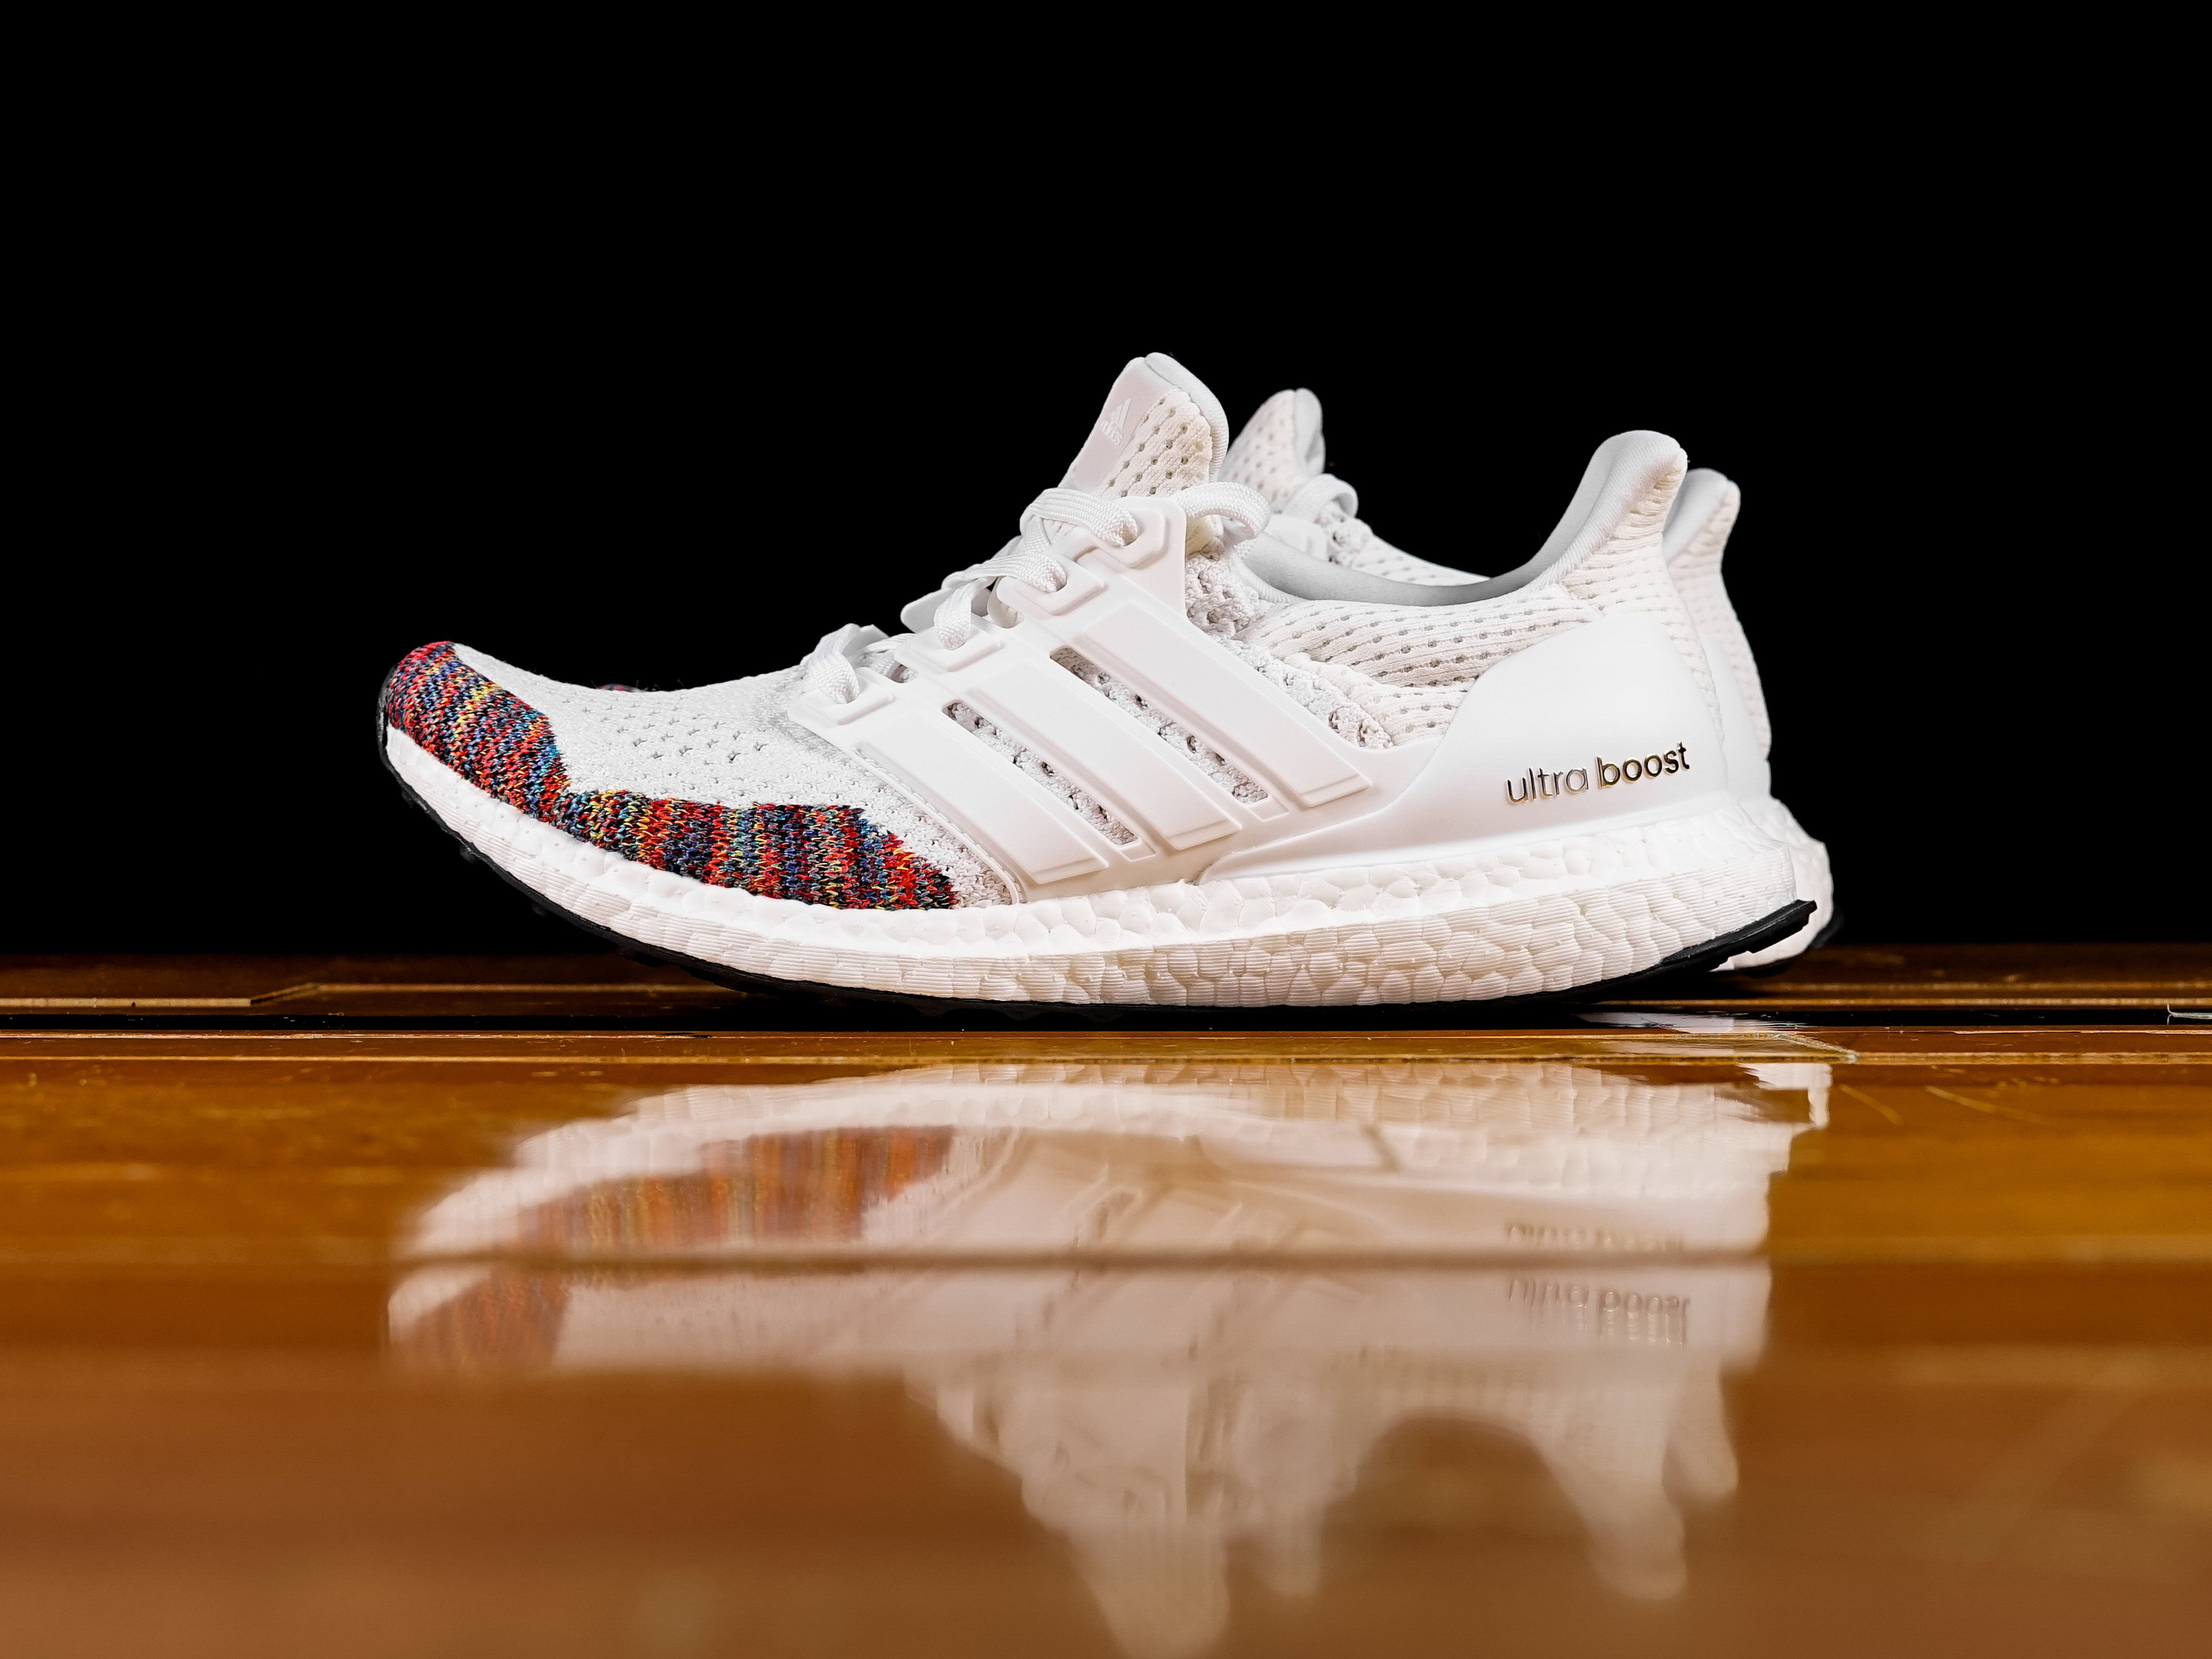 adidas UltraBOOST LTD White,Multicolored | BB7800 | Foot